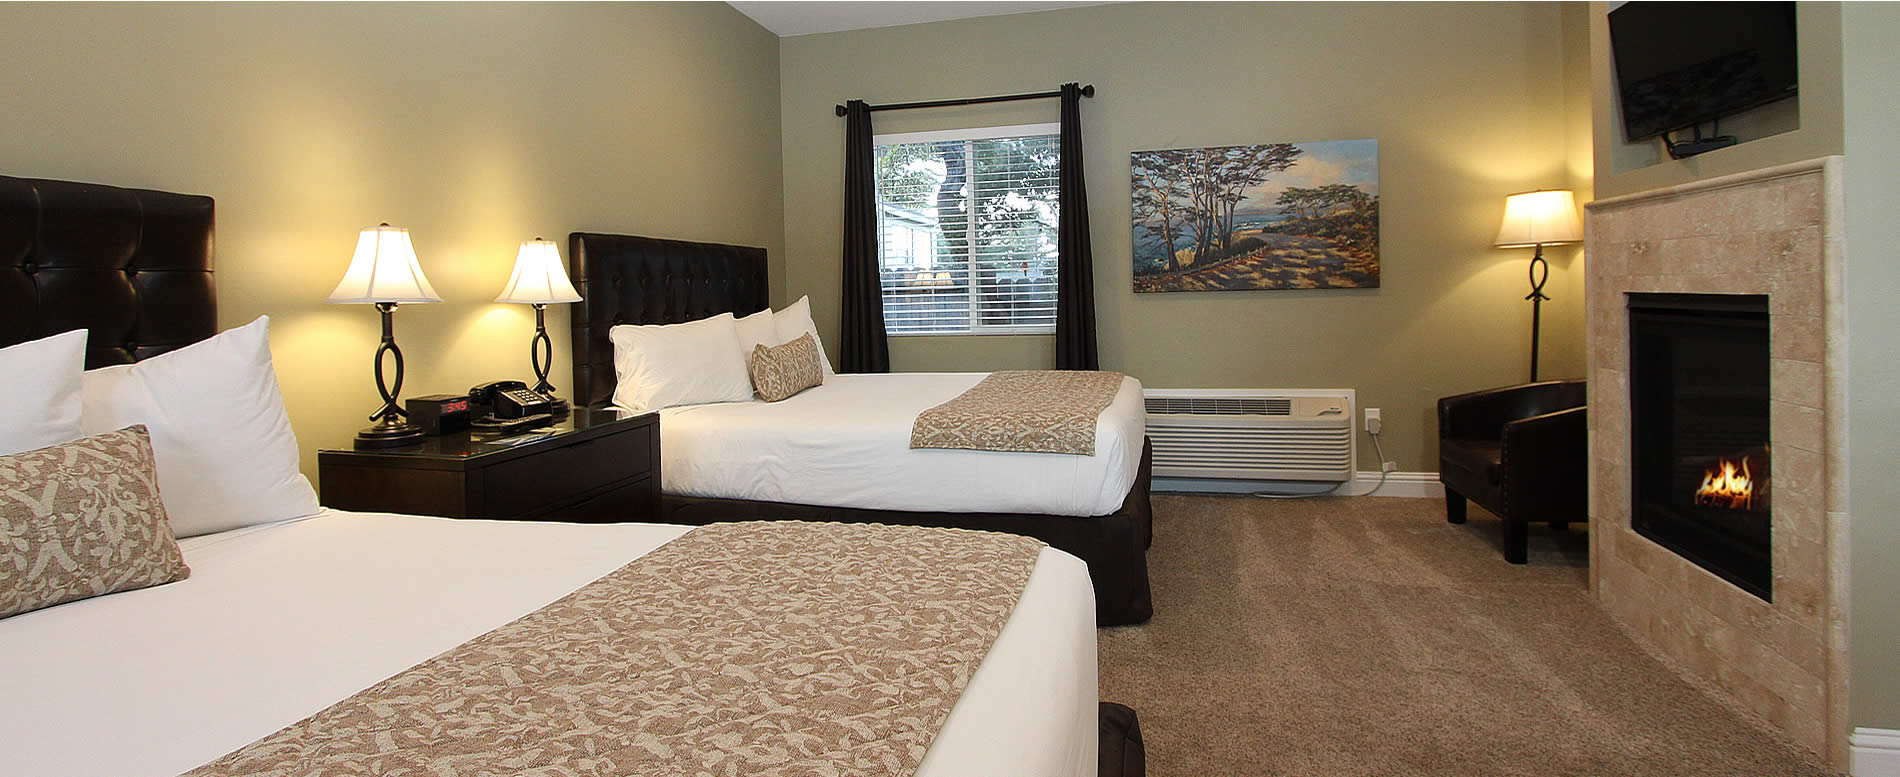 monterey ca lodging - two beds, fireplace and TV